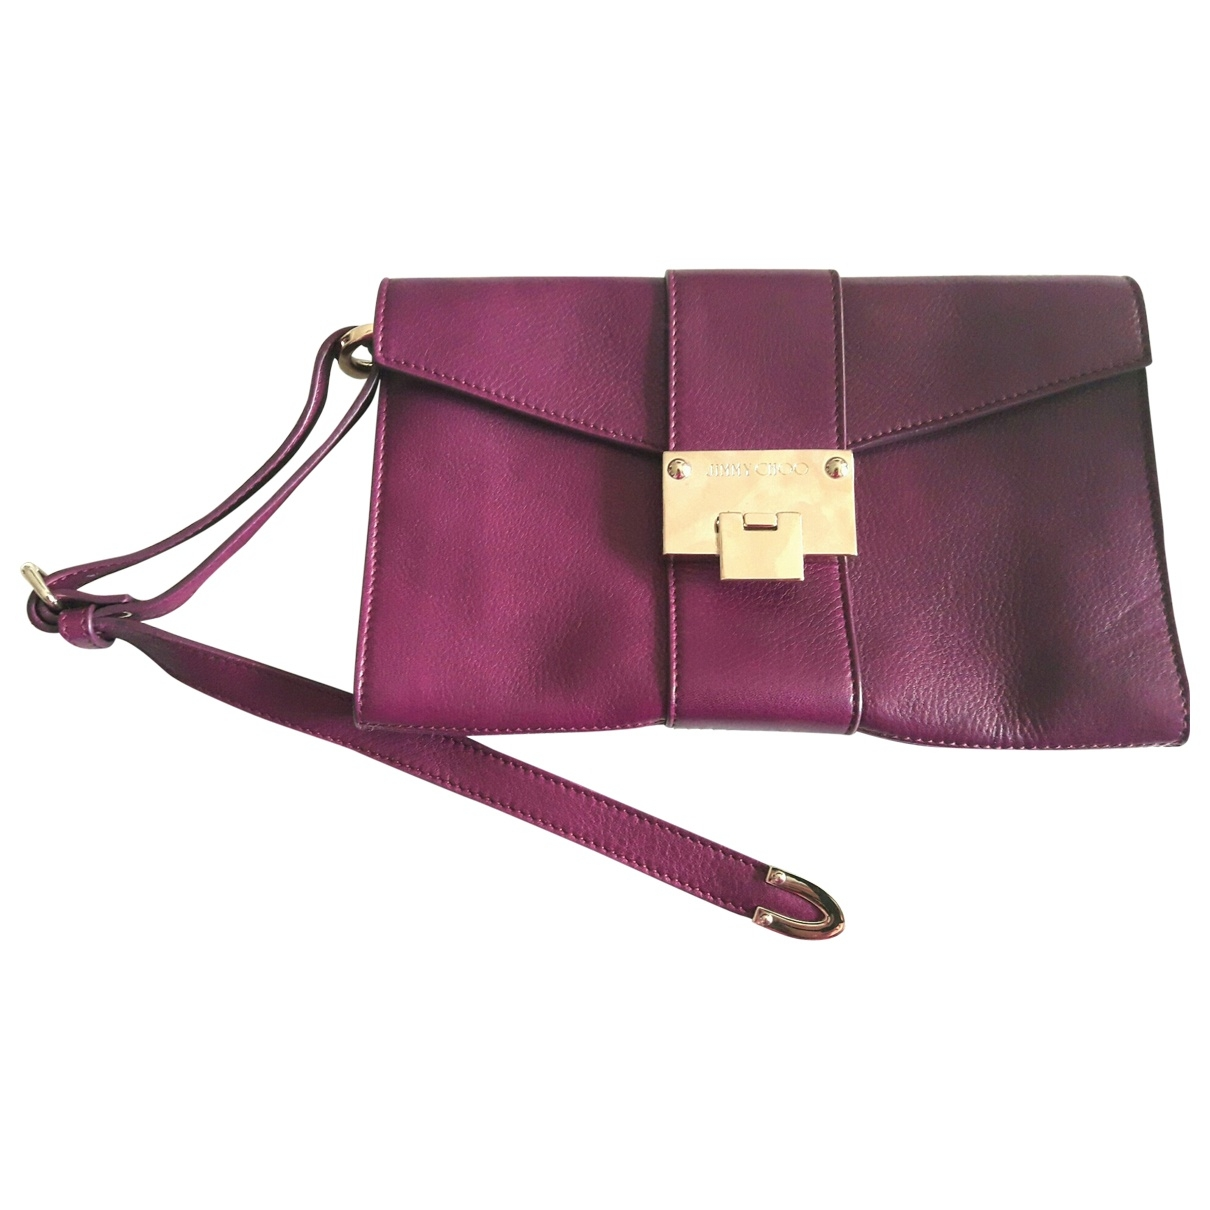 Jimmy Choo \N Purple Leather Clutch bag for Women \N